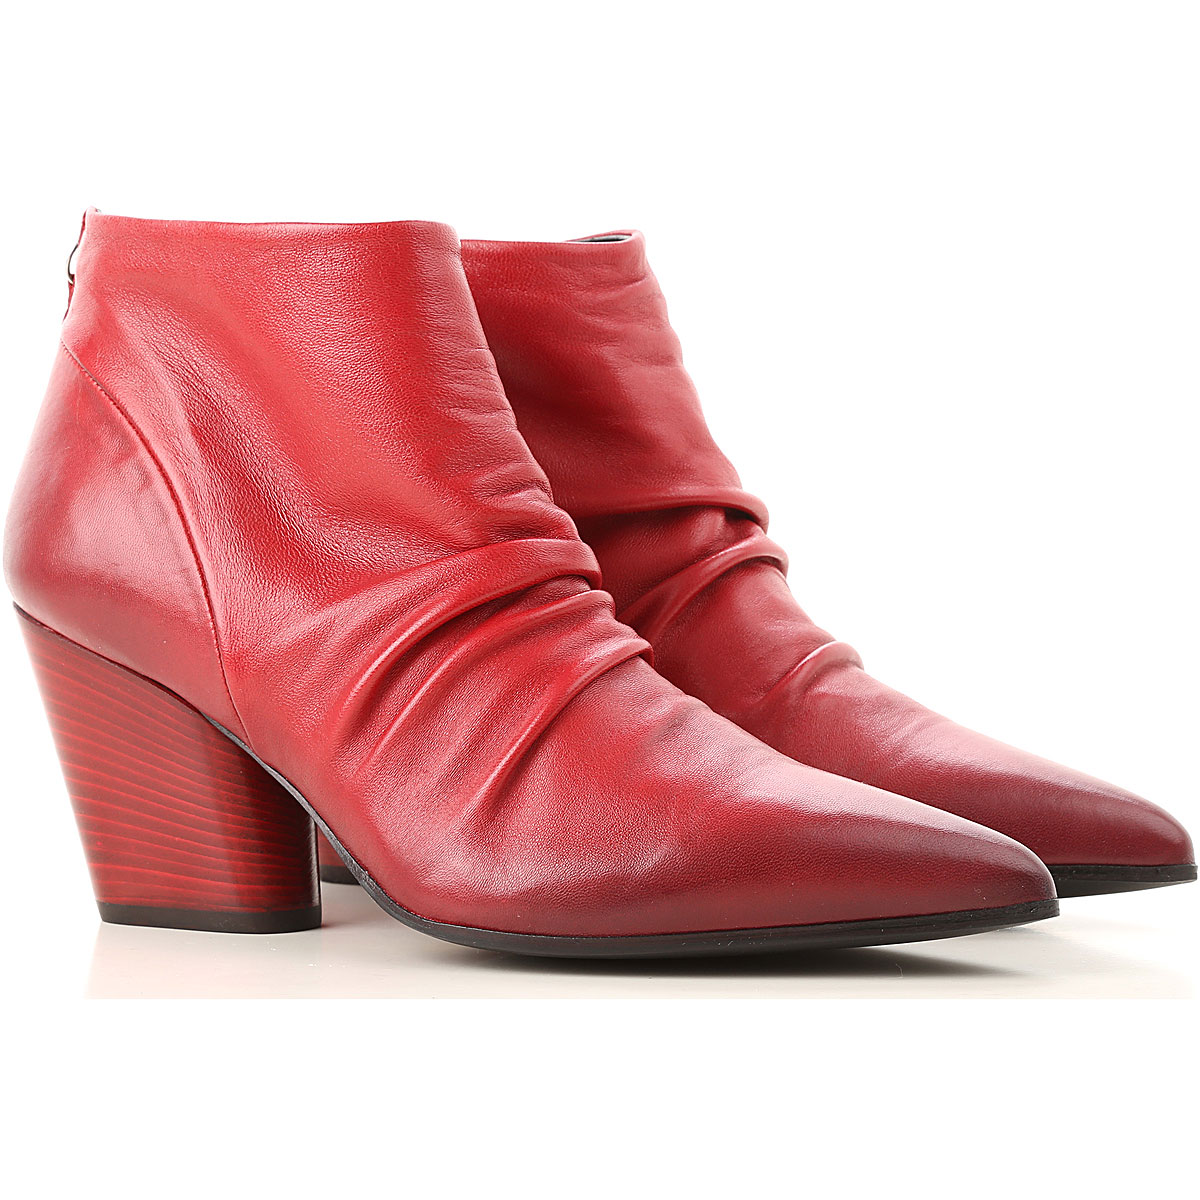 Image of Halmanera Boots for Women, Booties, Red, Leather, 2017, 10 7 8 9